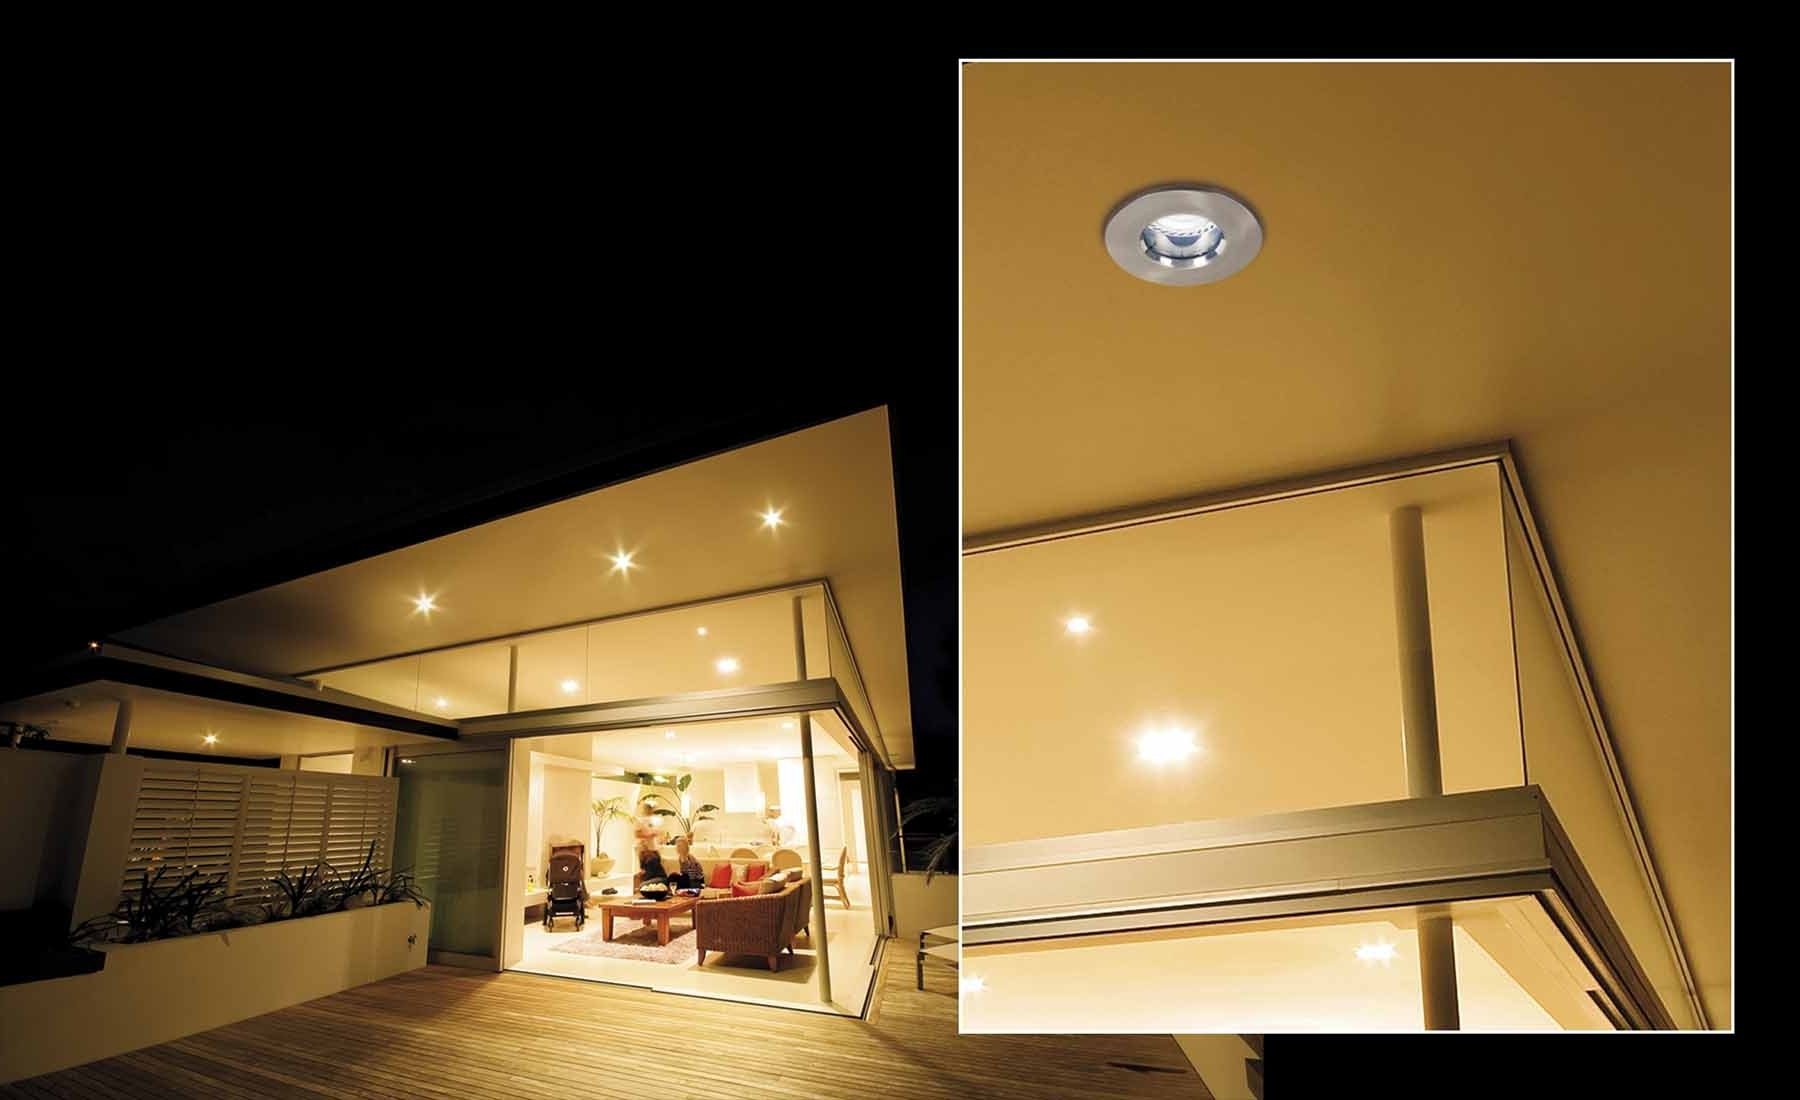 Outdoor Recessed Ceiling Lights Throughout Most Current Outdoor Led Recessed Lighting – Outdoor Designs (View 2 of 20)